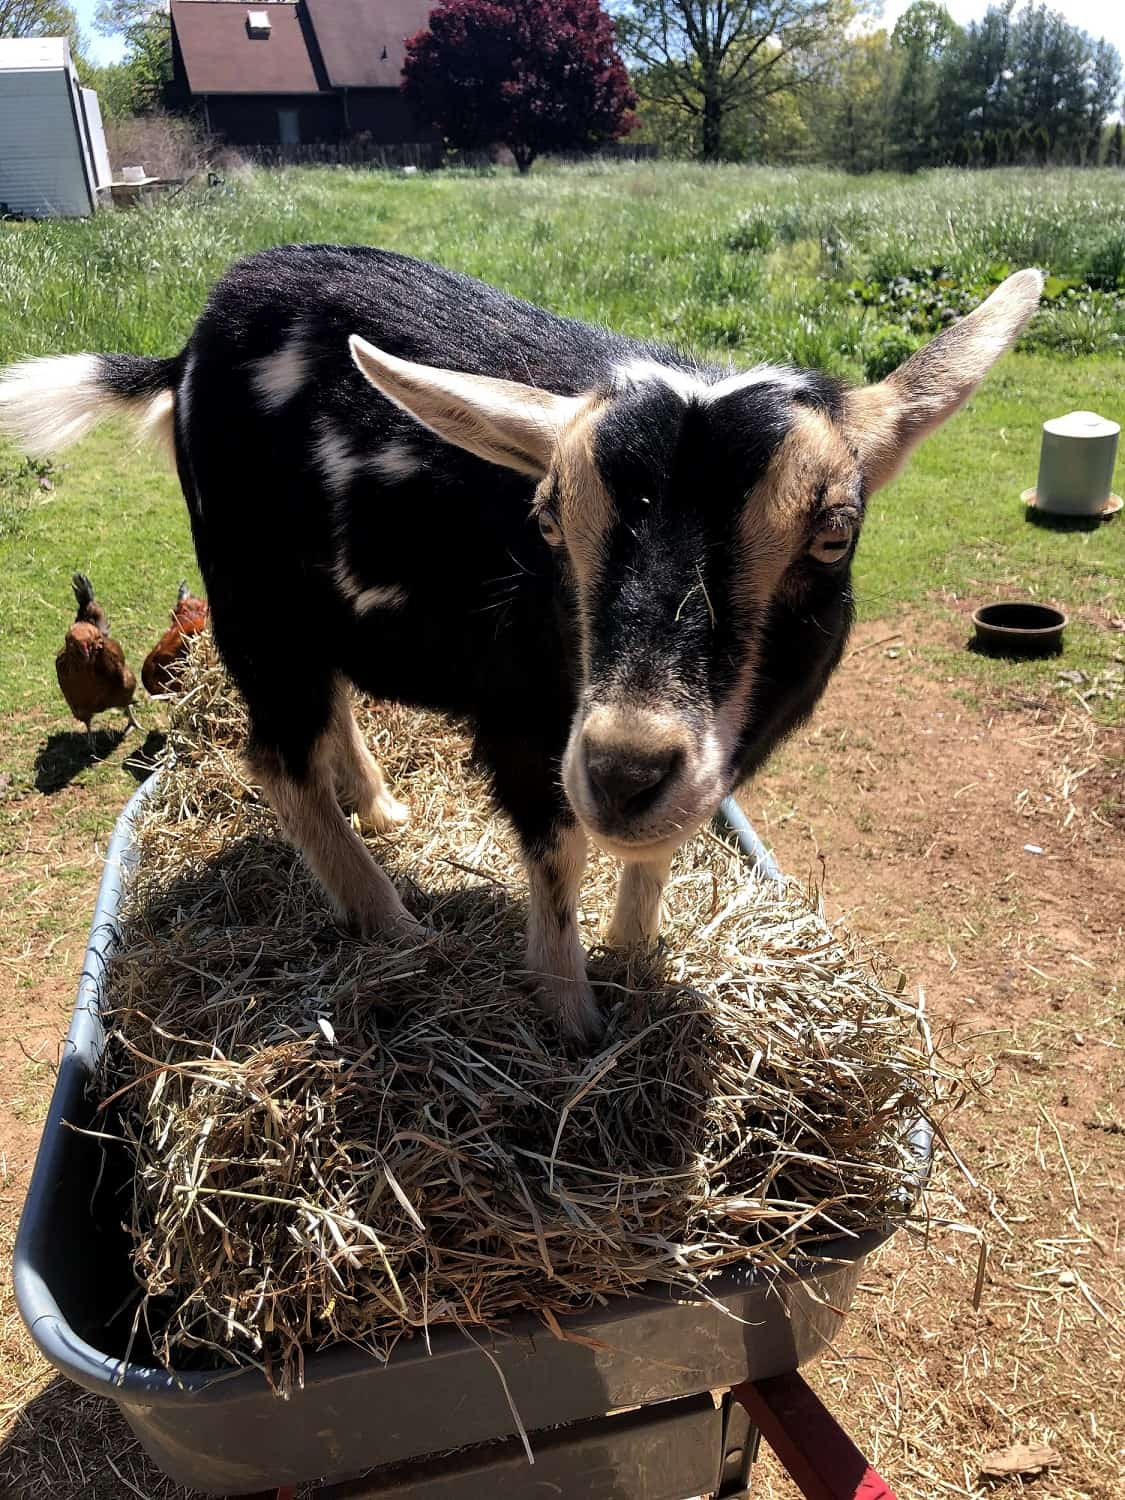 goat standing on hay bale in wheelbarrow